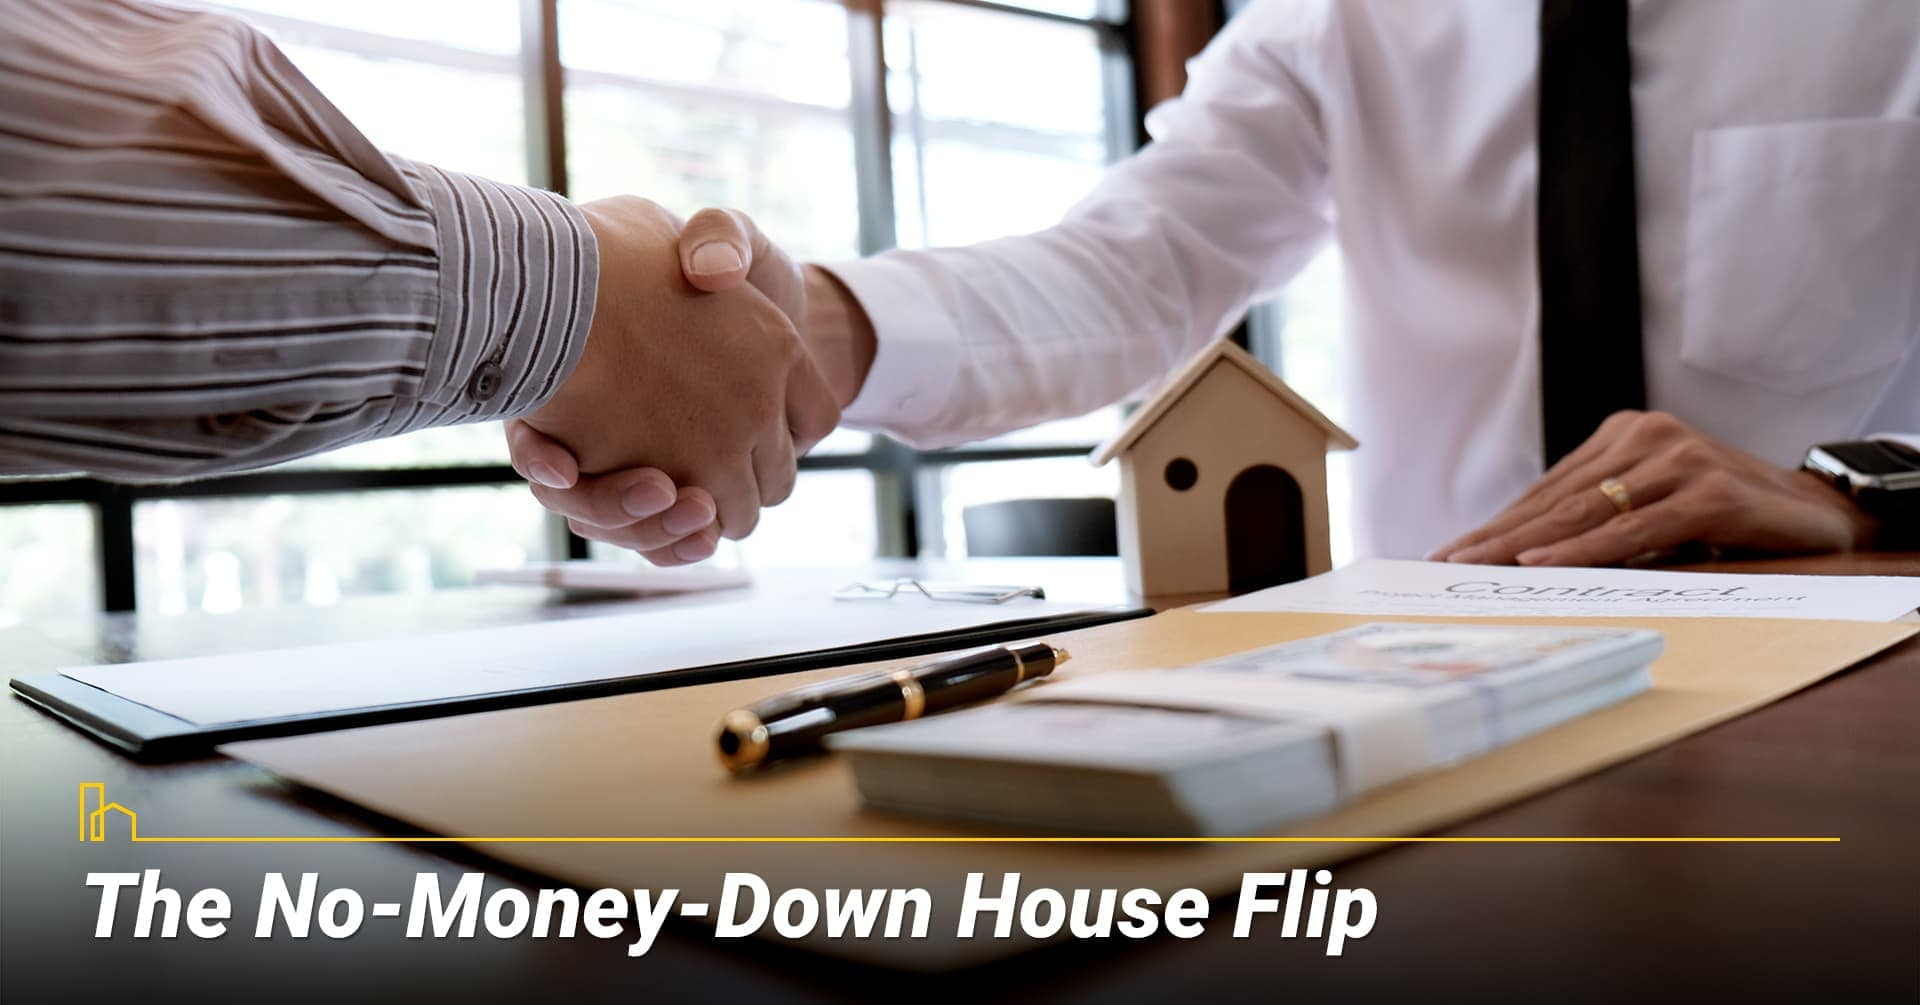 The No-Money-Down House Flip, the efficient way to flip a house